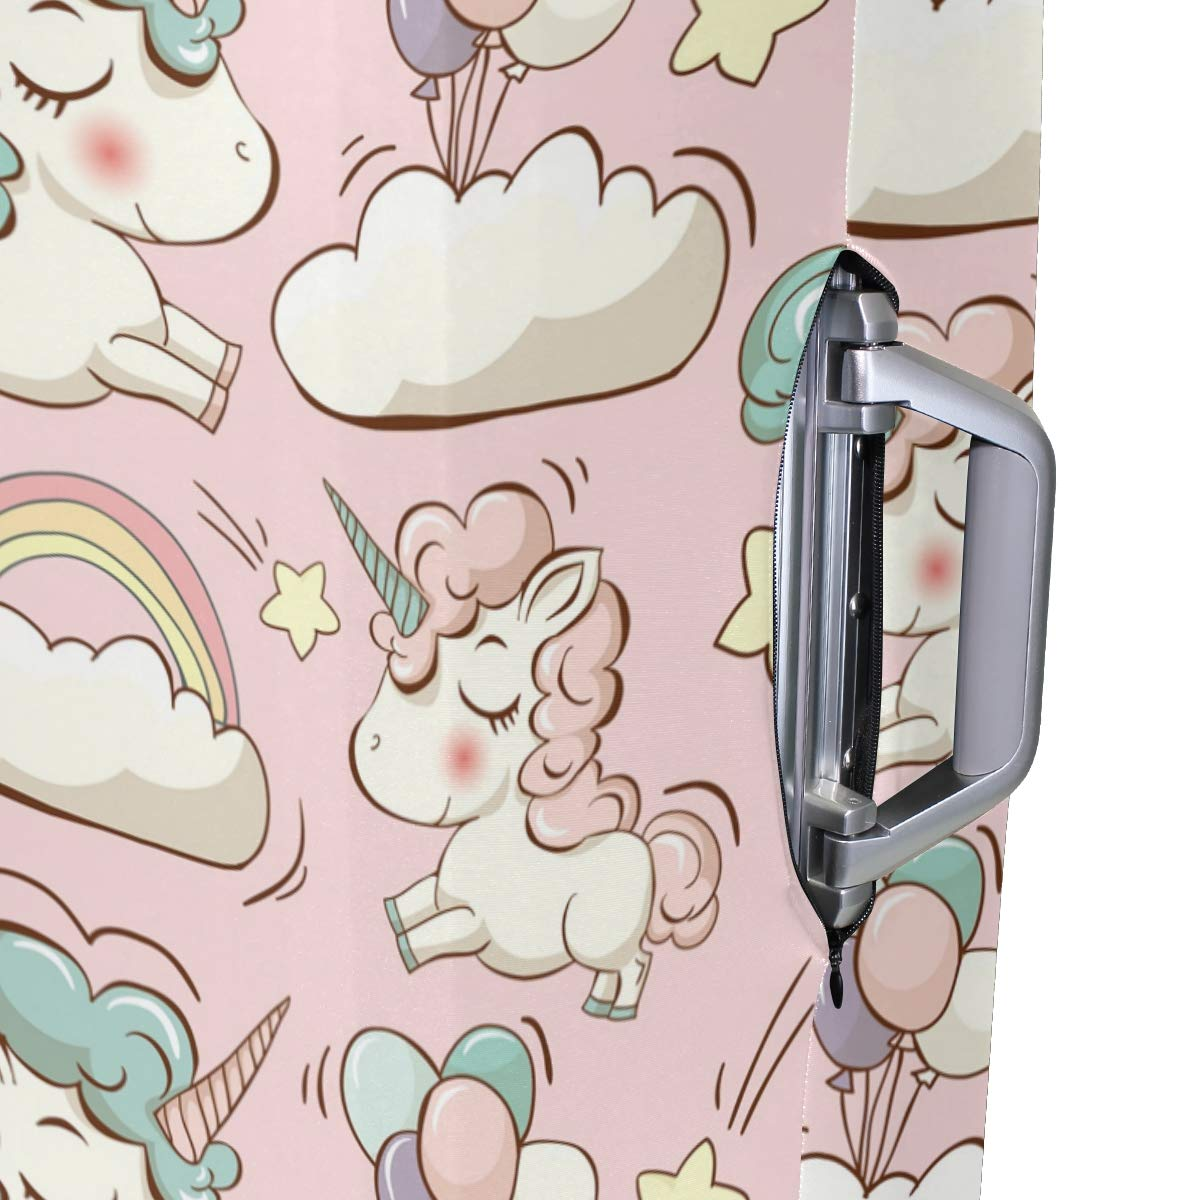 FOLPPLY Funny Cartoon Sheep With Birds Luggage Cover Baggage Suitcase Travel Protector Fit for 18-32 Inch